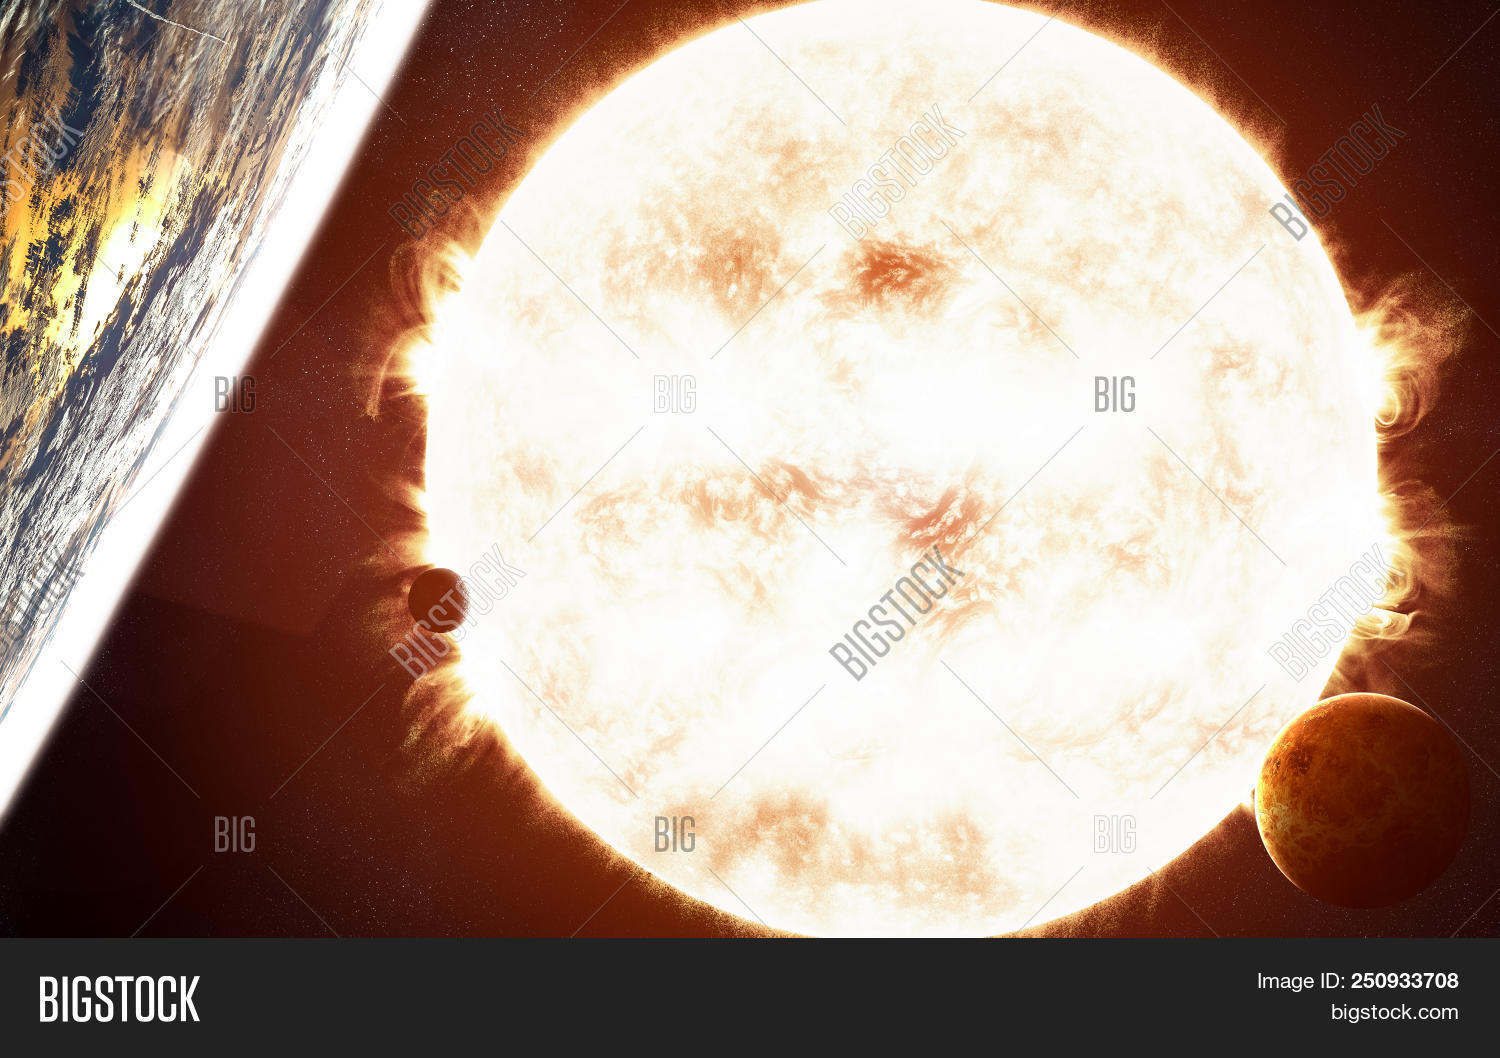 Sun Red Giant Star Image Photo Free Trial Bigstock